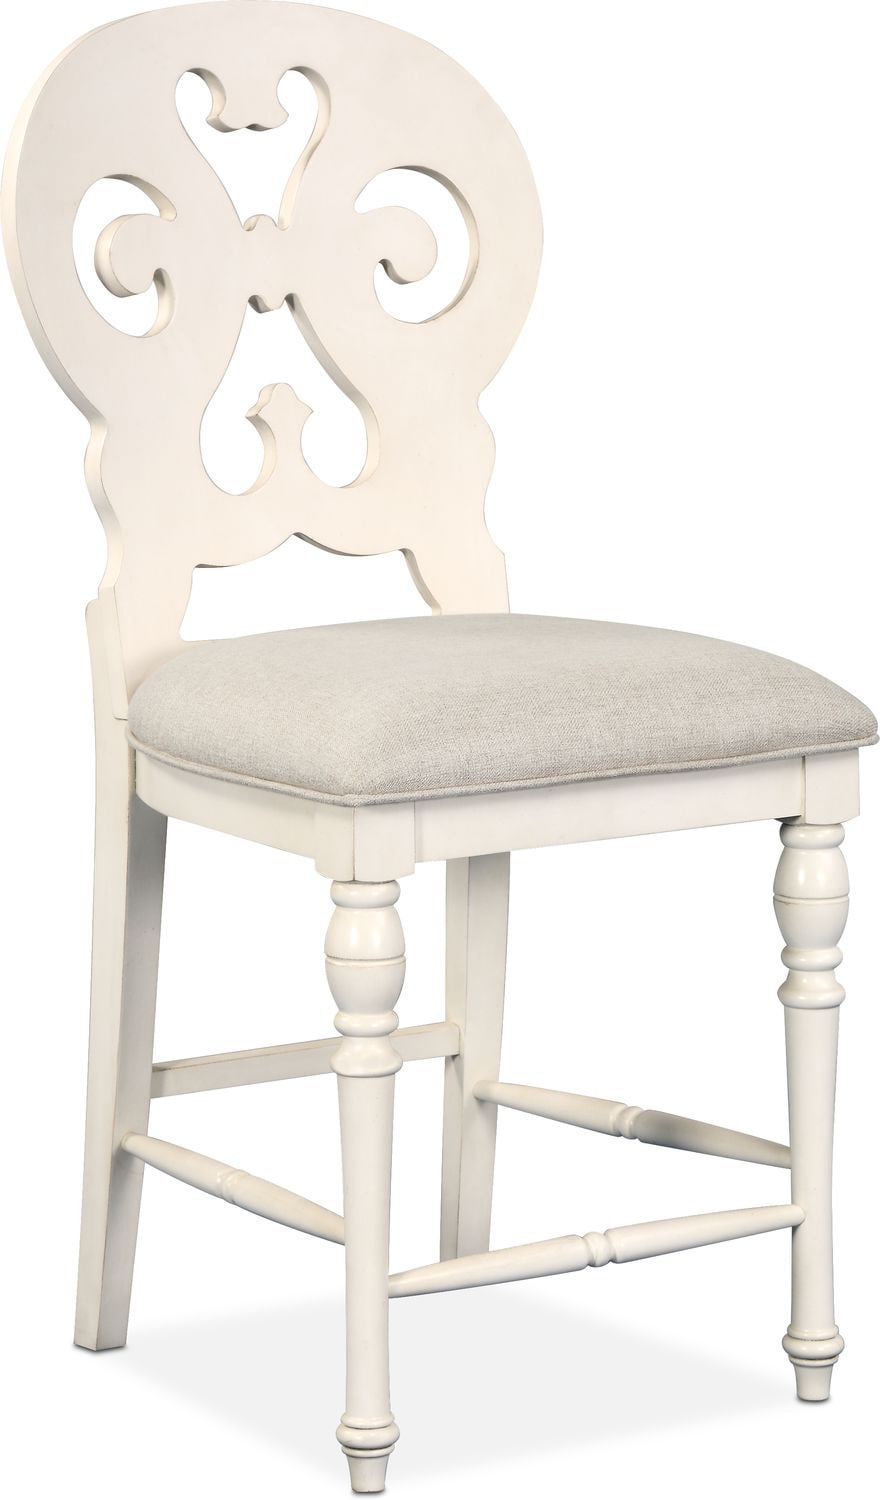 Attrayant Charleston Counter Height Scroll Back Stool   White